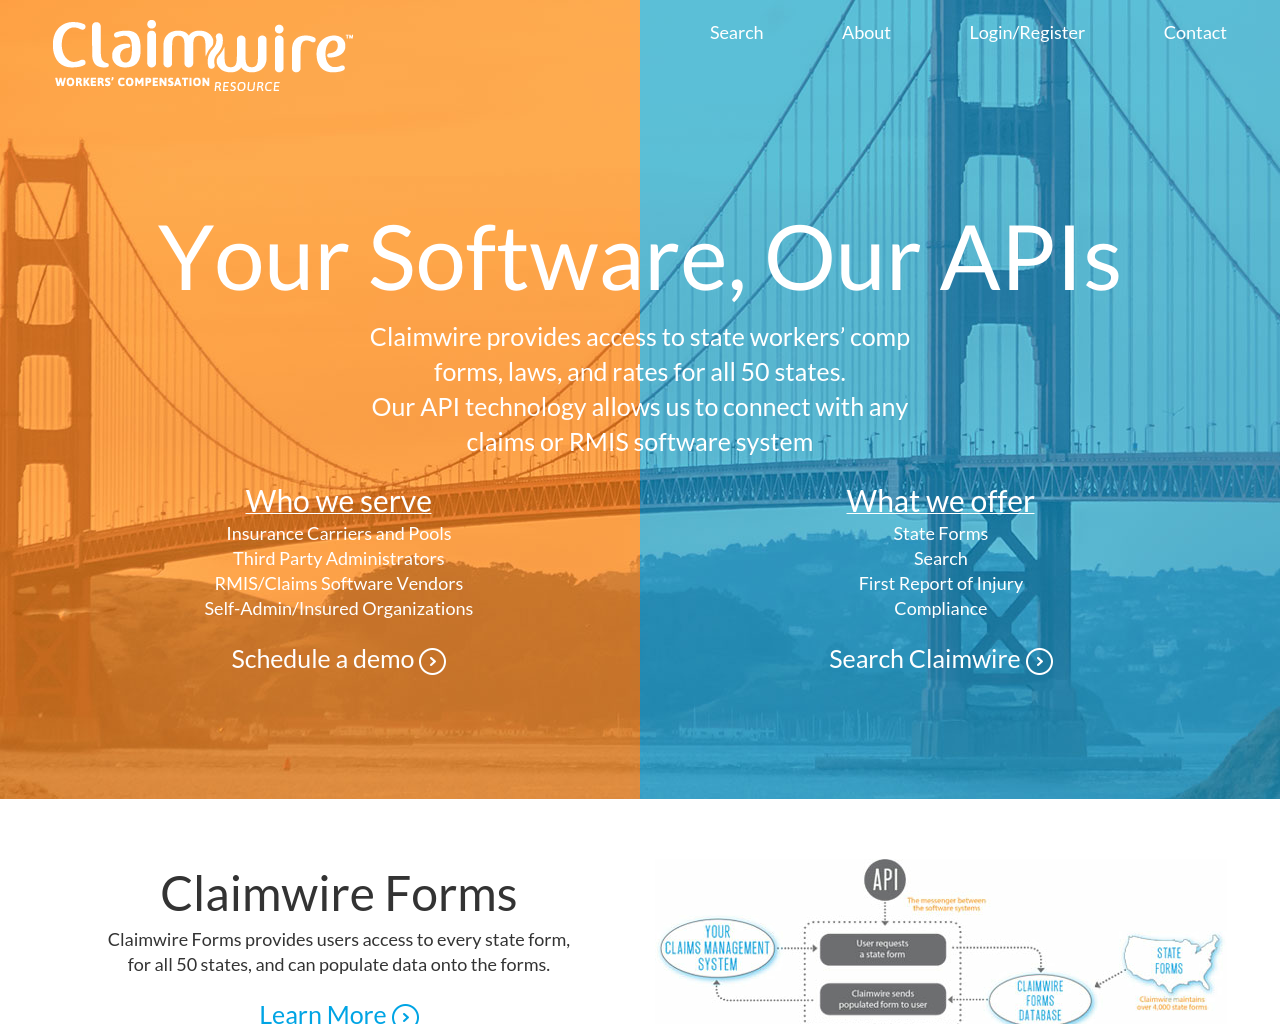 Claimwire-Advertising-Reviews-Pricing